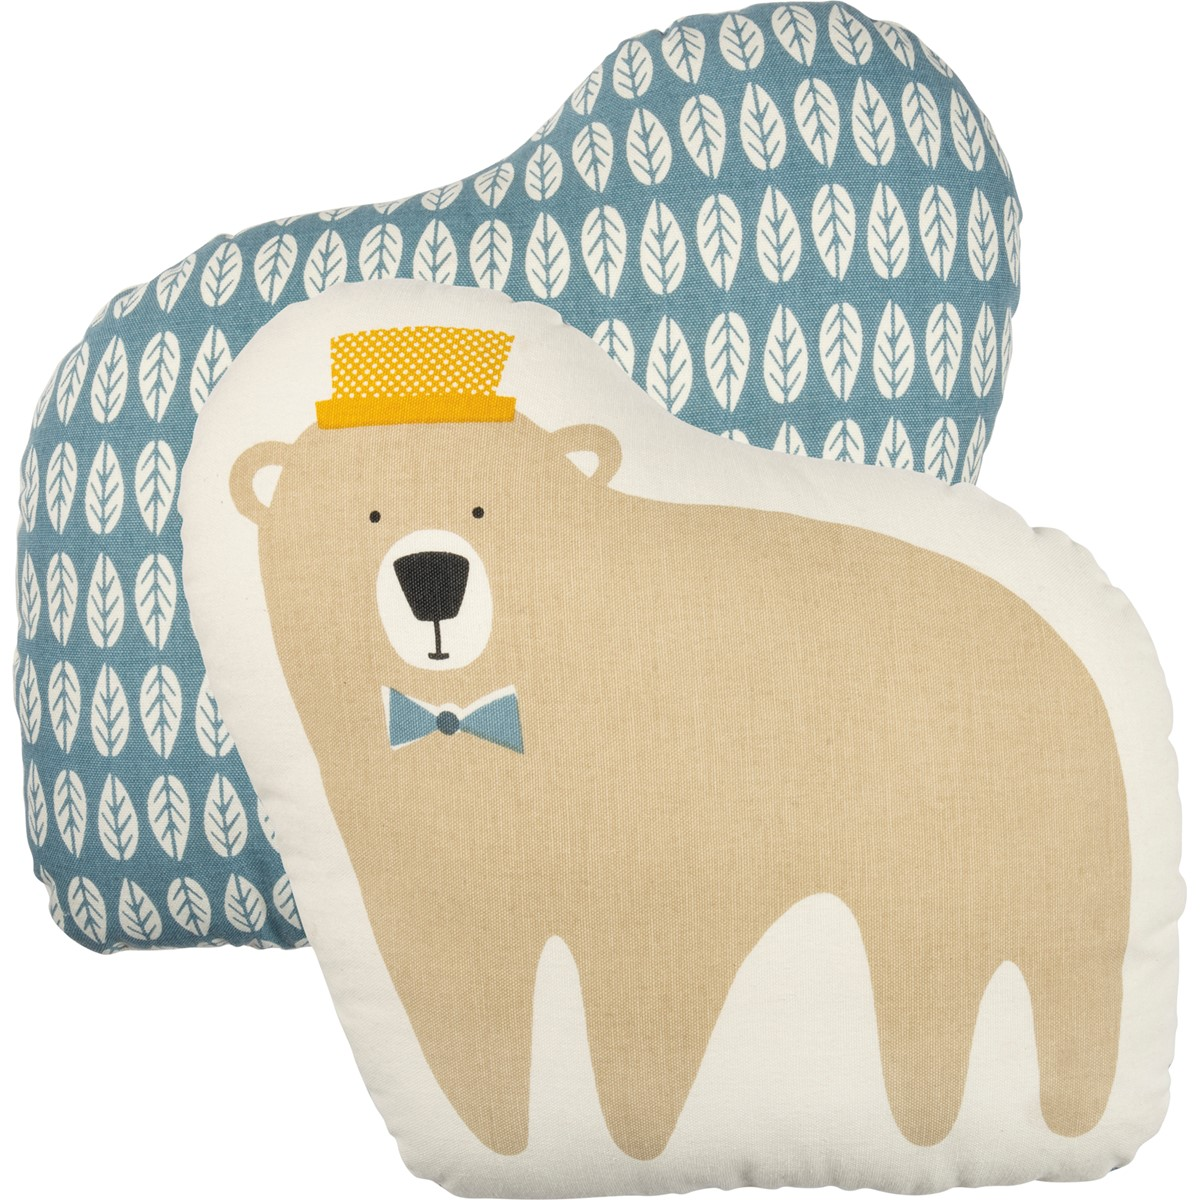 "Shaped Pillow - Bear - 14.50"" x 13.50"" - Cotton"